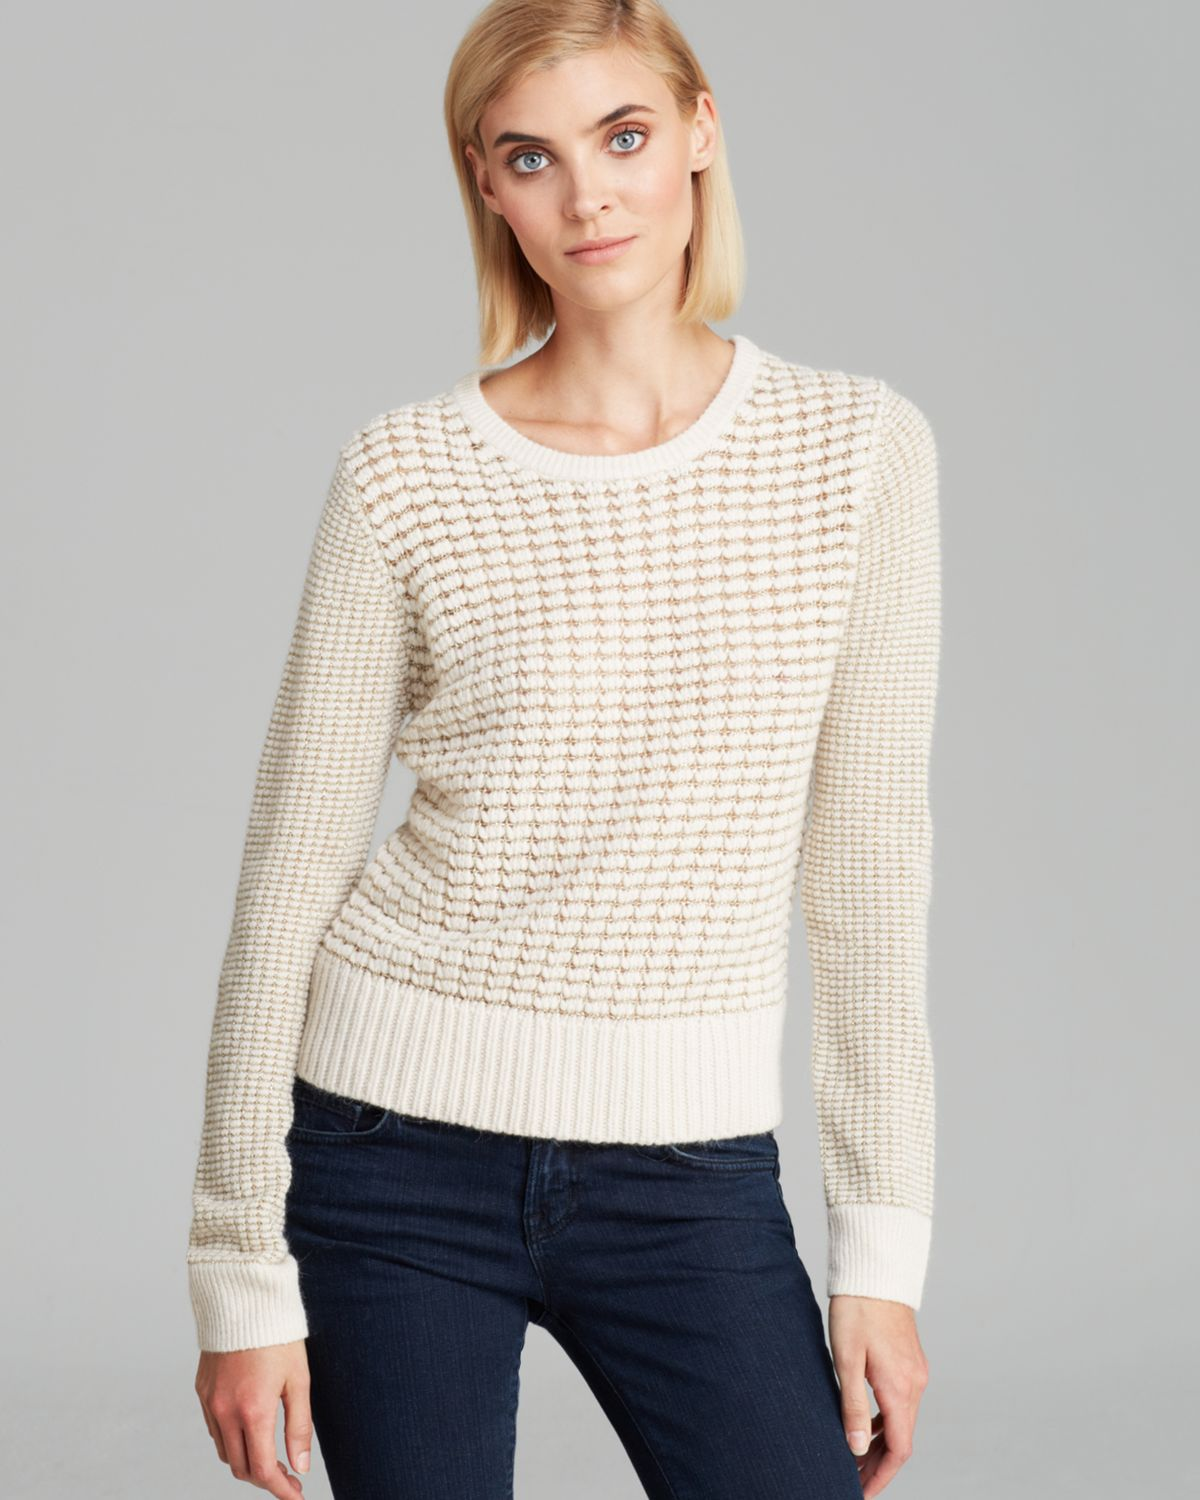 FRENCH CONNECTION Sweater - Gridlock Sparkle | Bloomingdale's